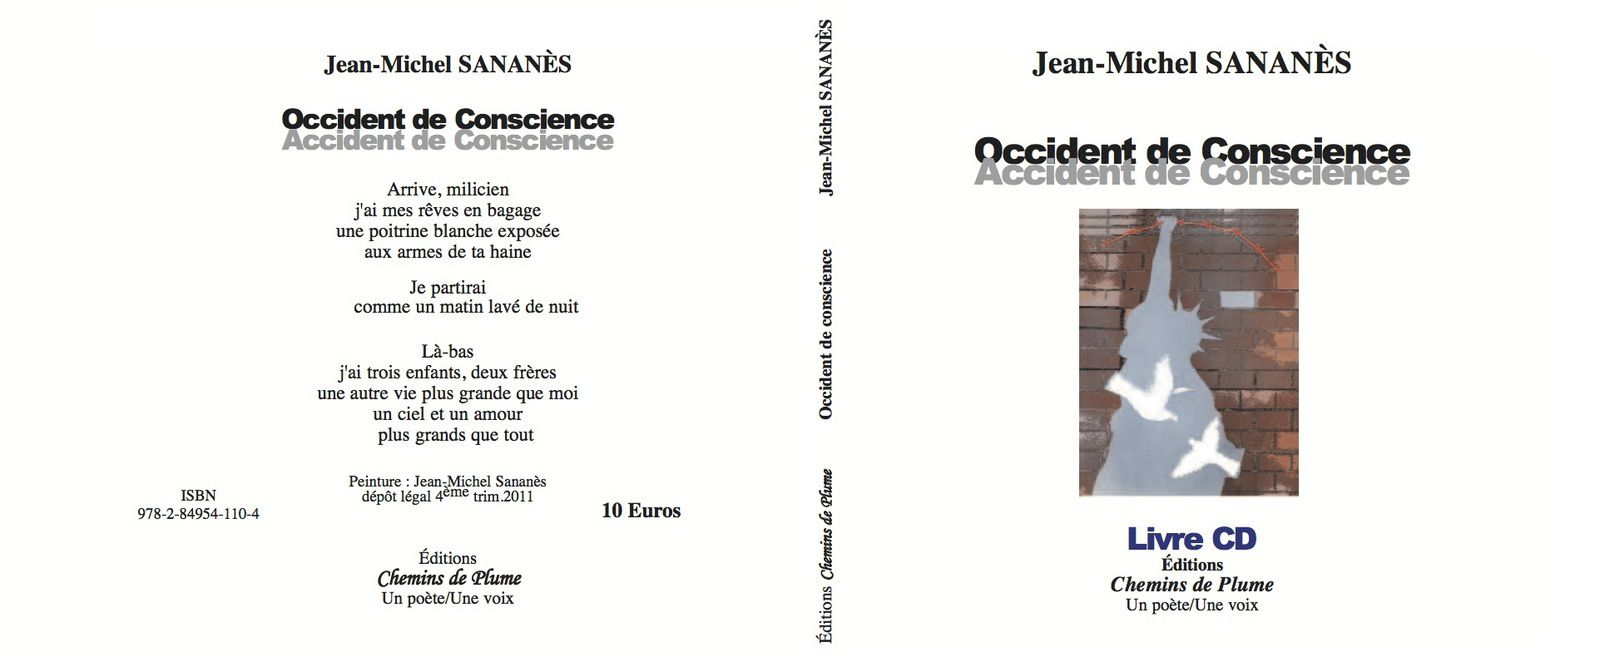 Occident/Accident de conscience - Jean-Michel Sananès